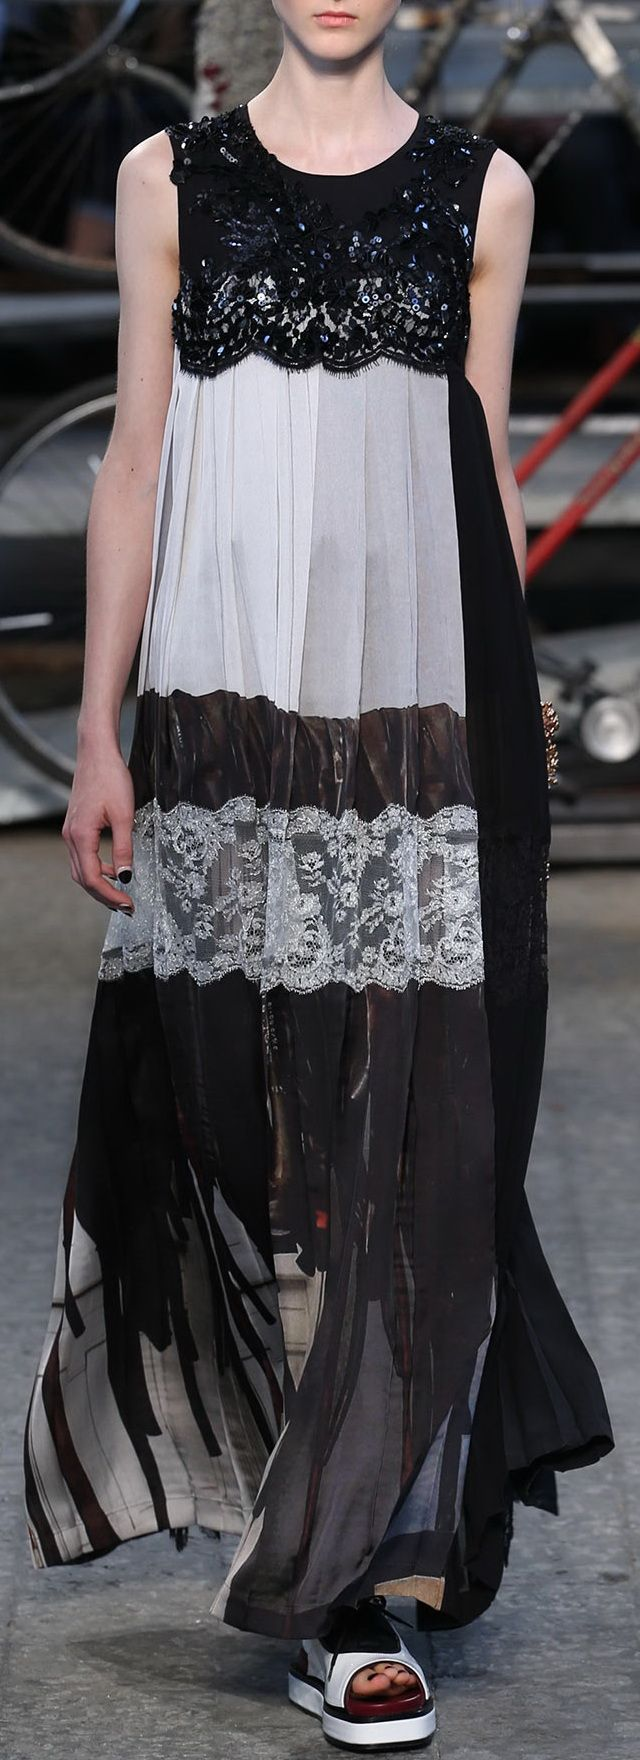 Antonio Marras / Spring 2015 Ready-to-Wear